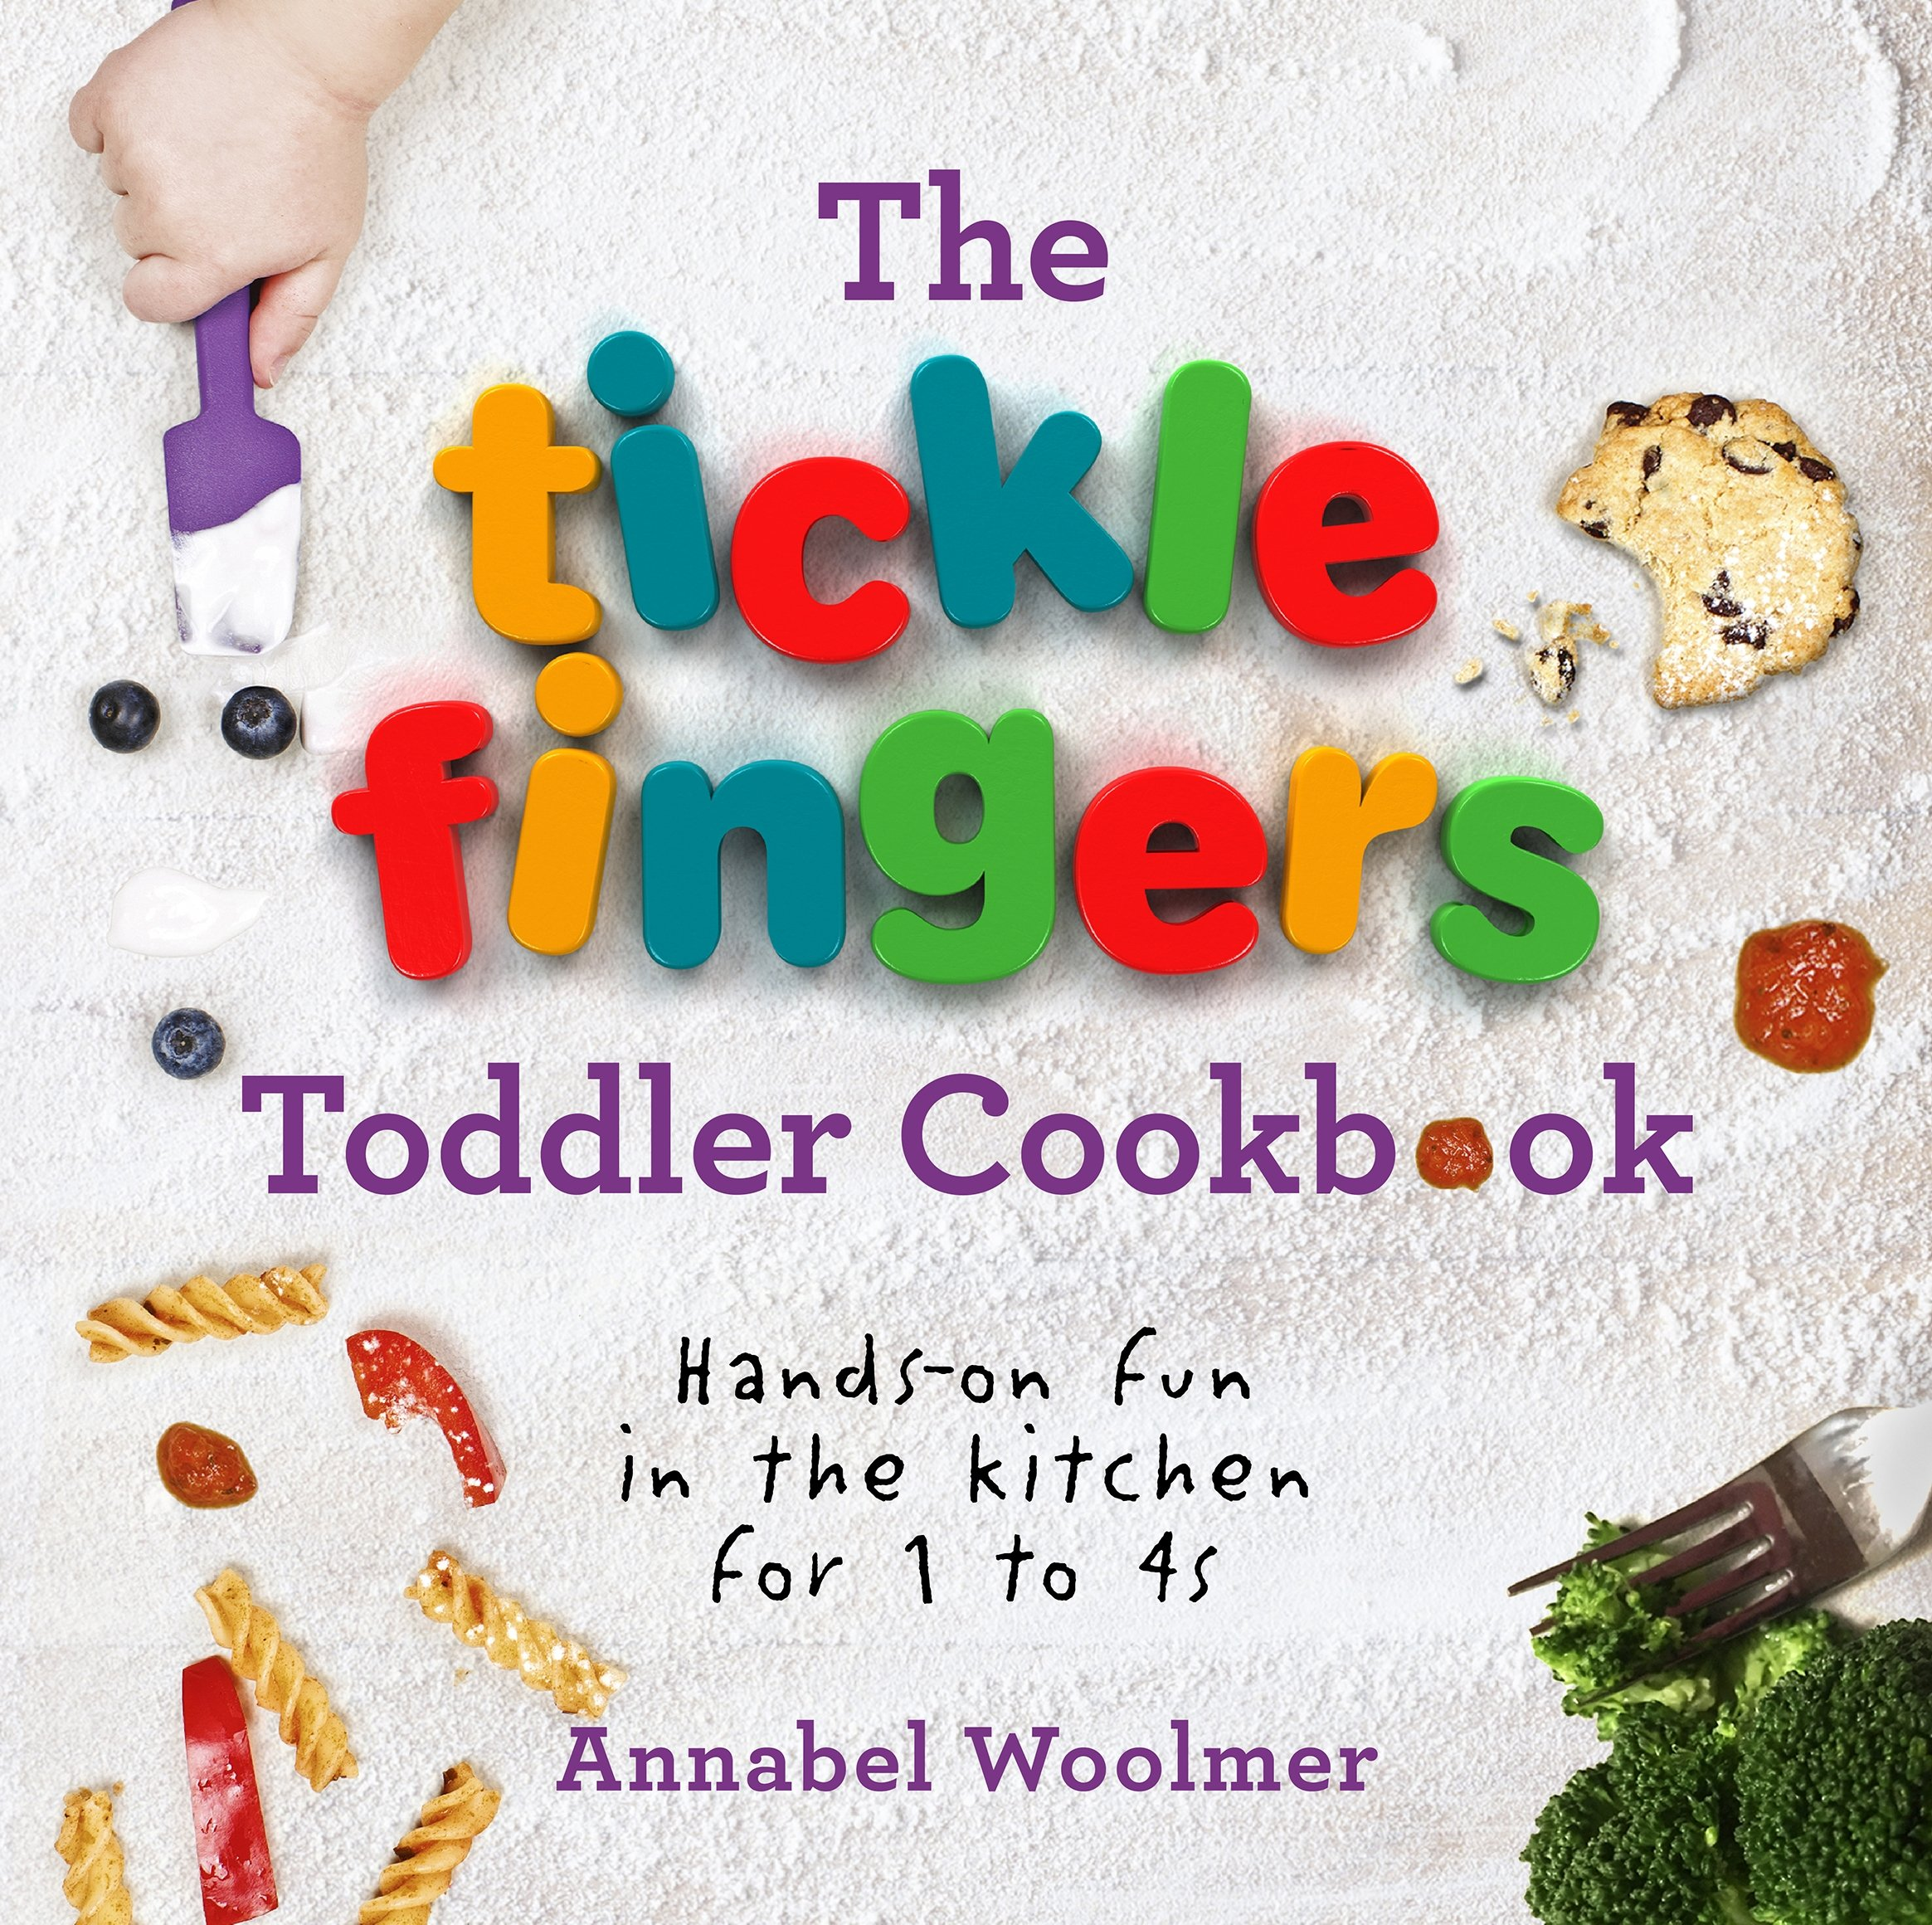 The Tickle Fingers Toddler Cookbook: Hands-on Fun in the Kitchen for 1 to 4s Hardcover – October 24, 2017 Annabel Woolmer Random House UK 1785040561 Cooking & Food